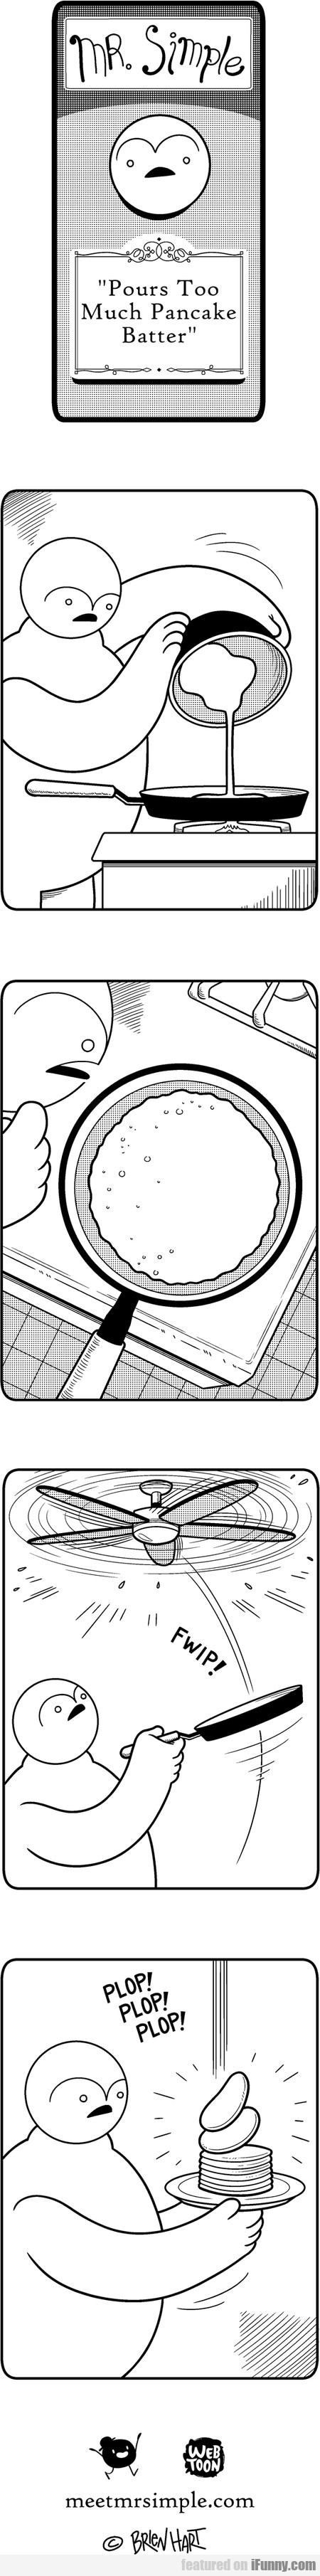 Mr. Simple Pours Too Much Pancake Batter